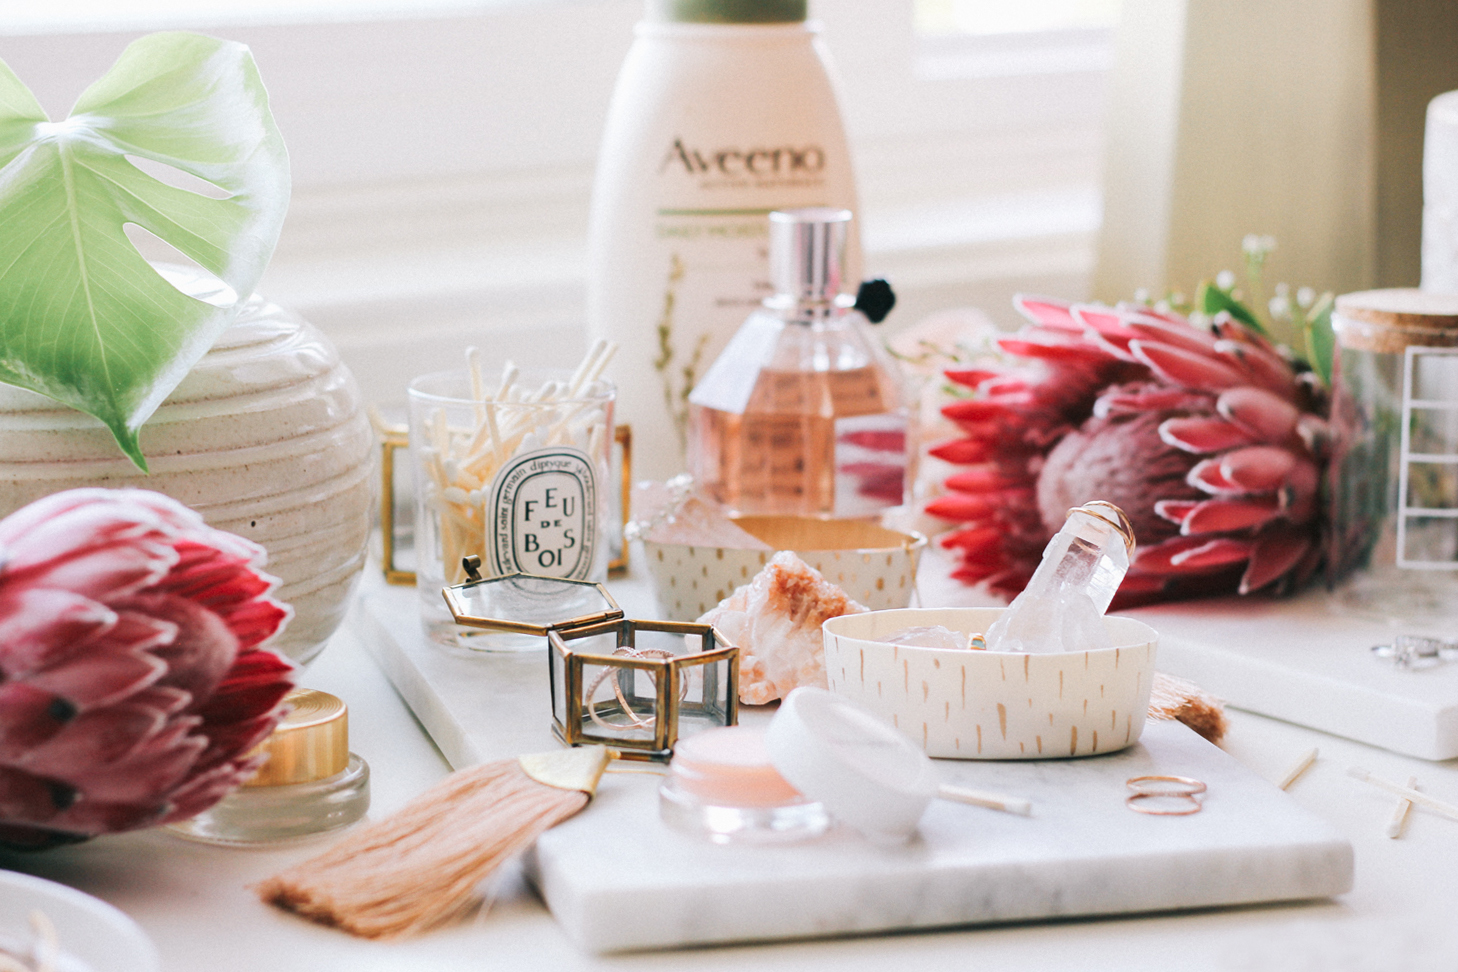 How to make a trinket dish out of your old bottles | A Fabulous Fete